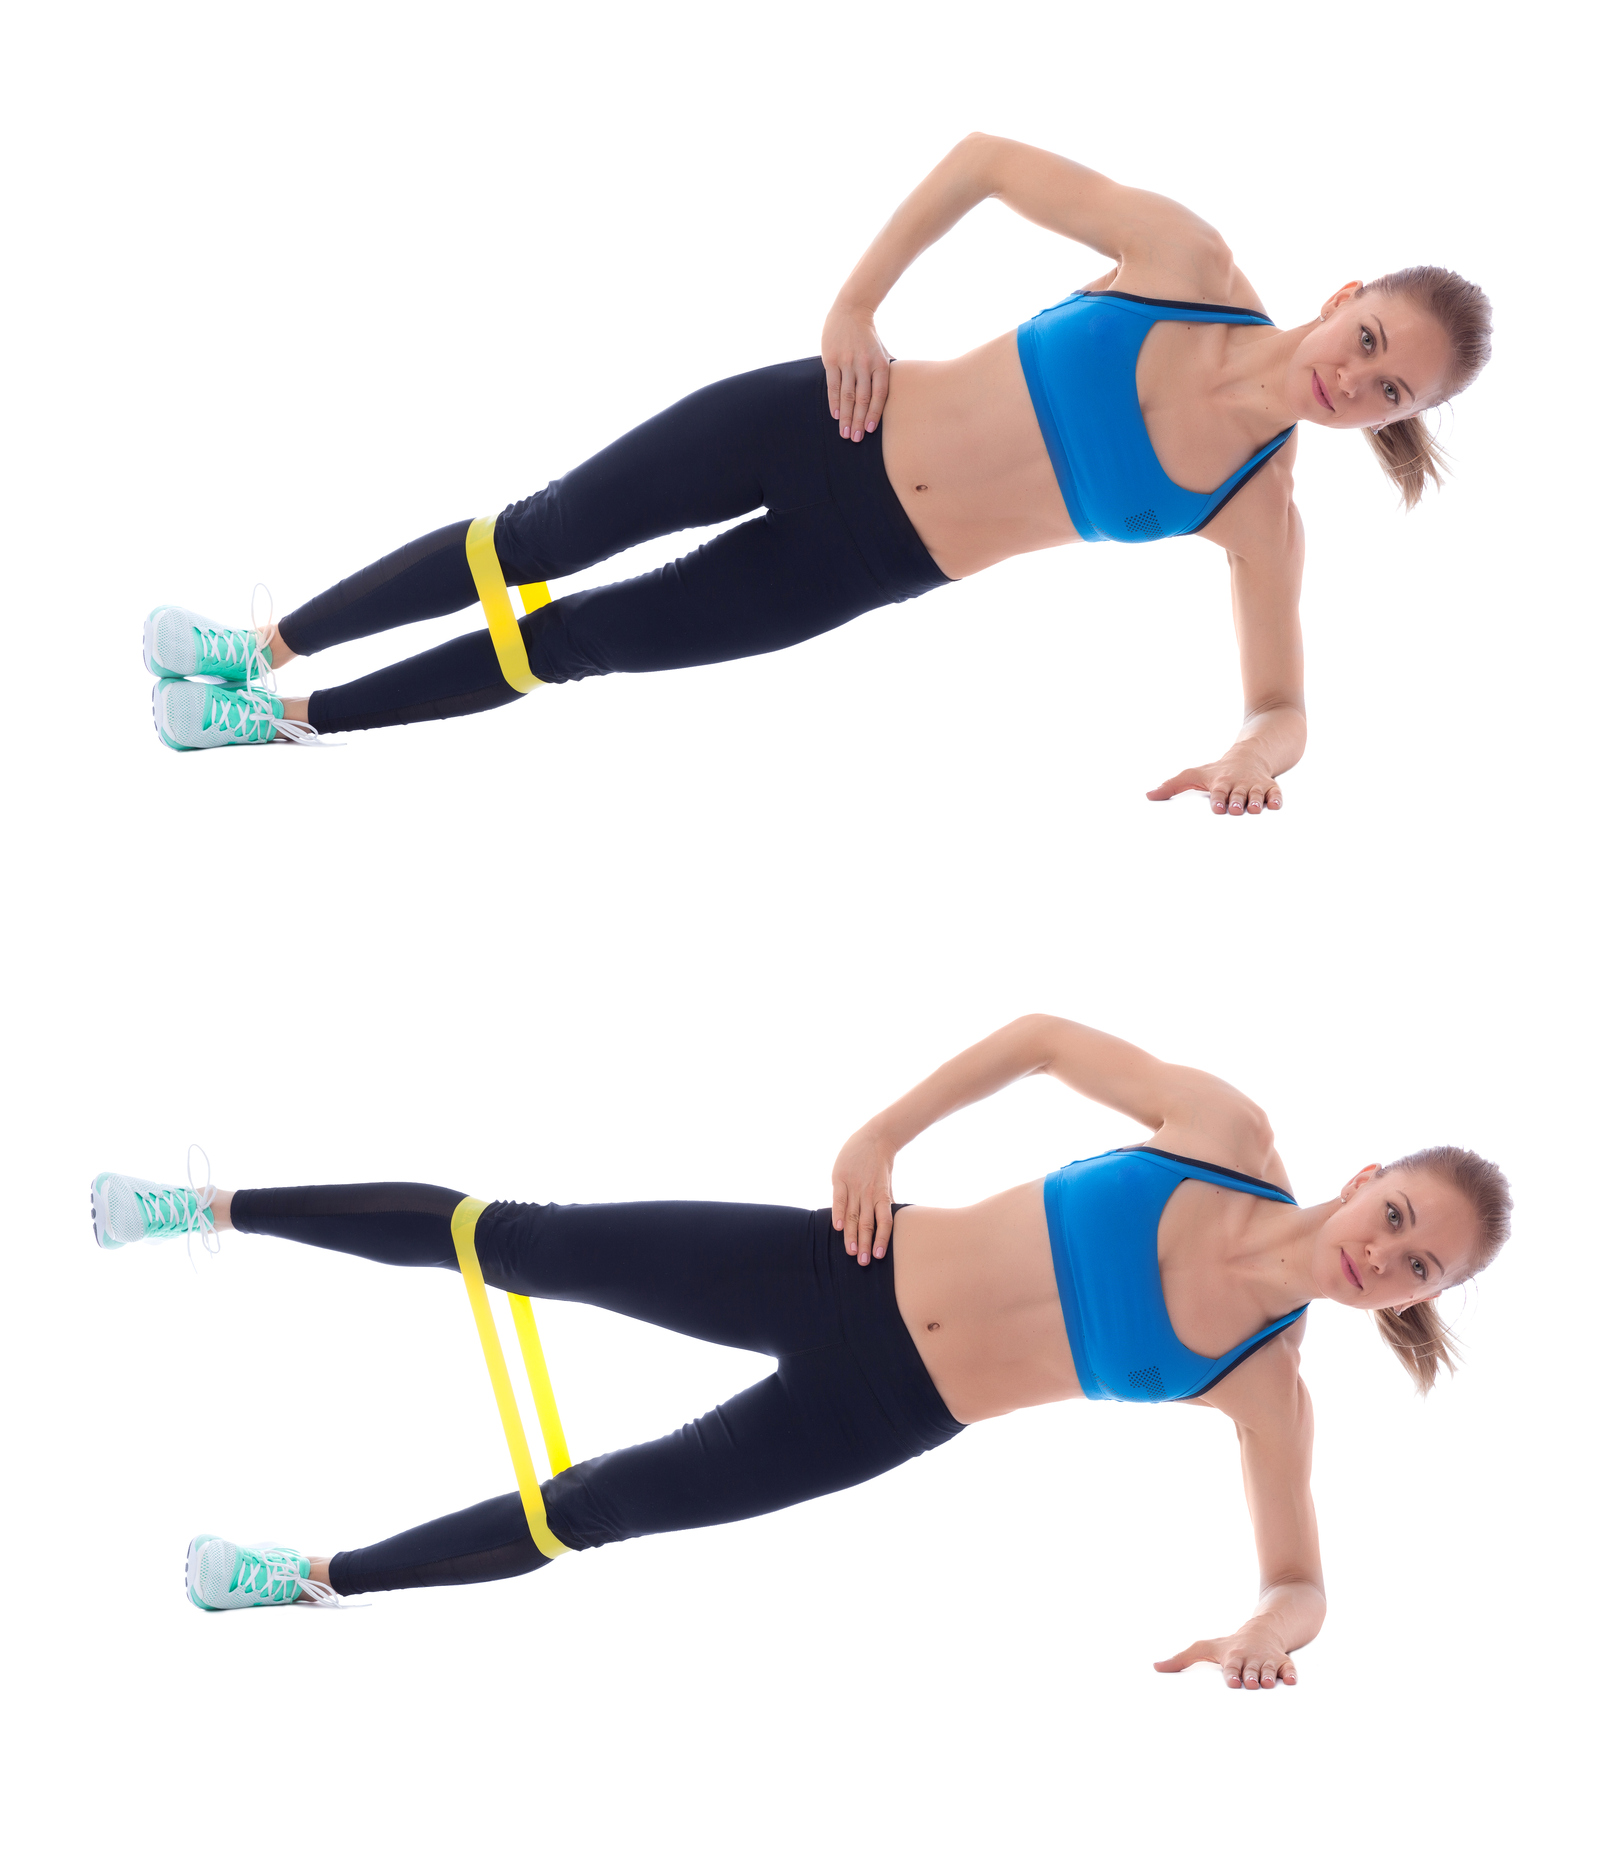 3 Exercises You Can Do Now To Help Build Strength In Your Legs